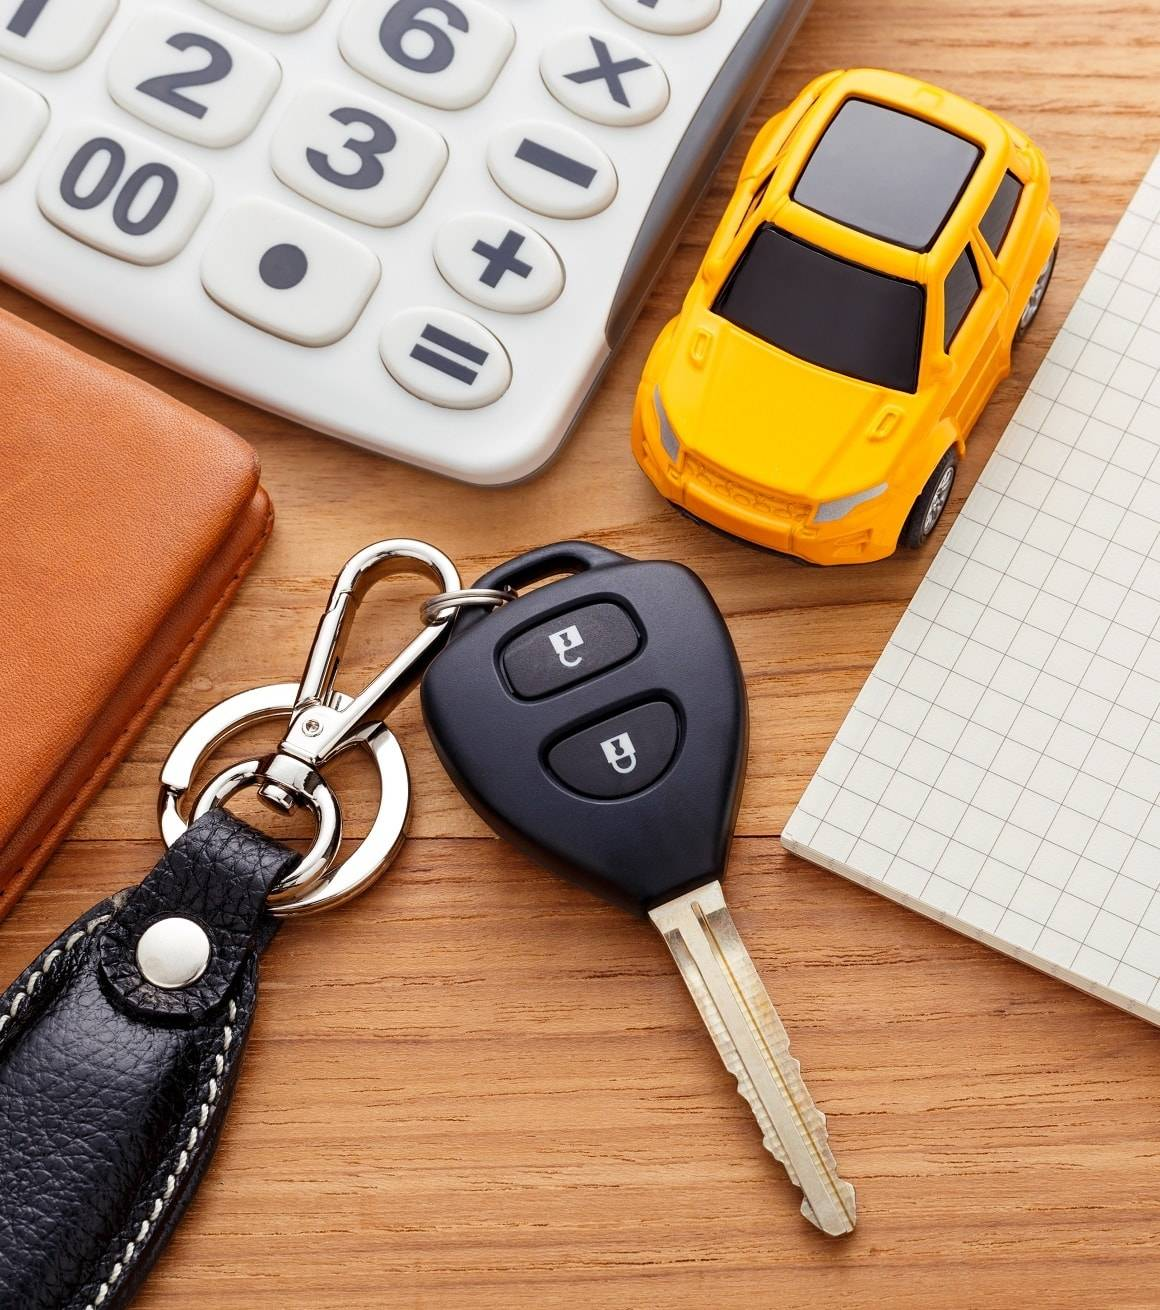 Using our monthly car payment calculator